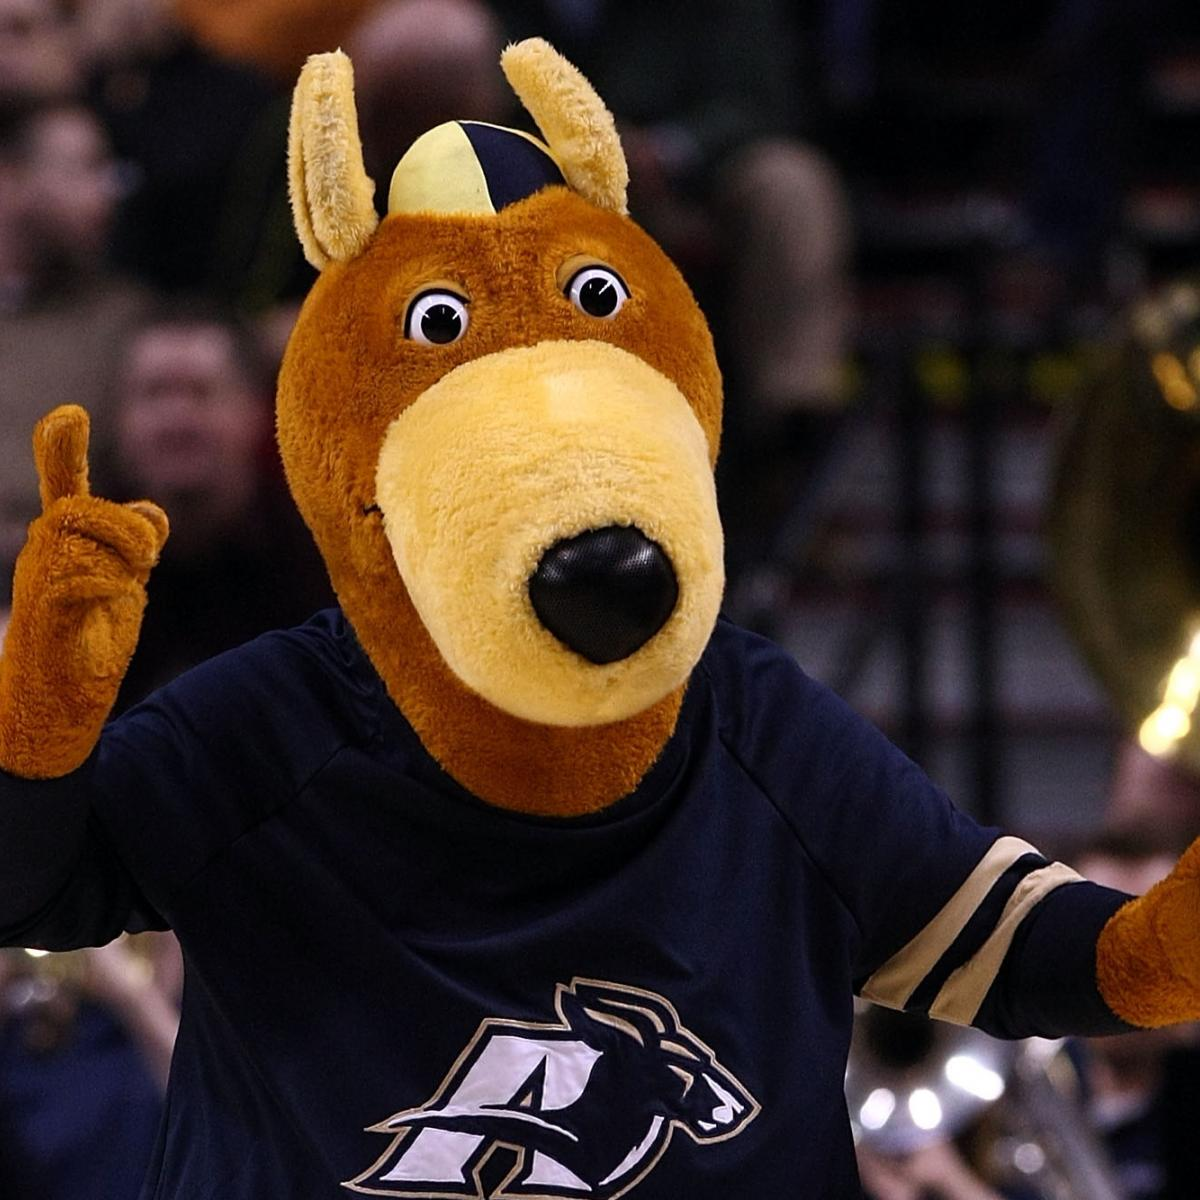 Seen The D1 Mascots Ever Akron College Has Zips  Nobody &